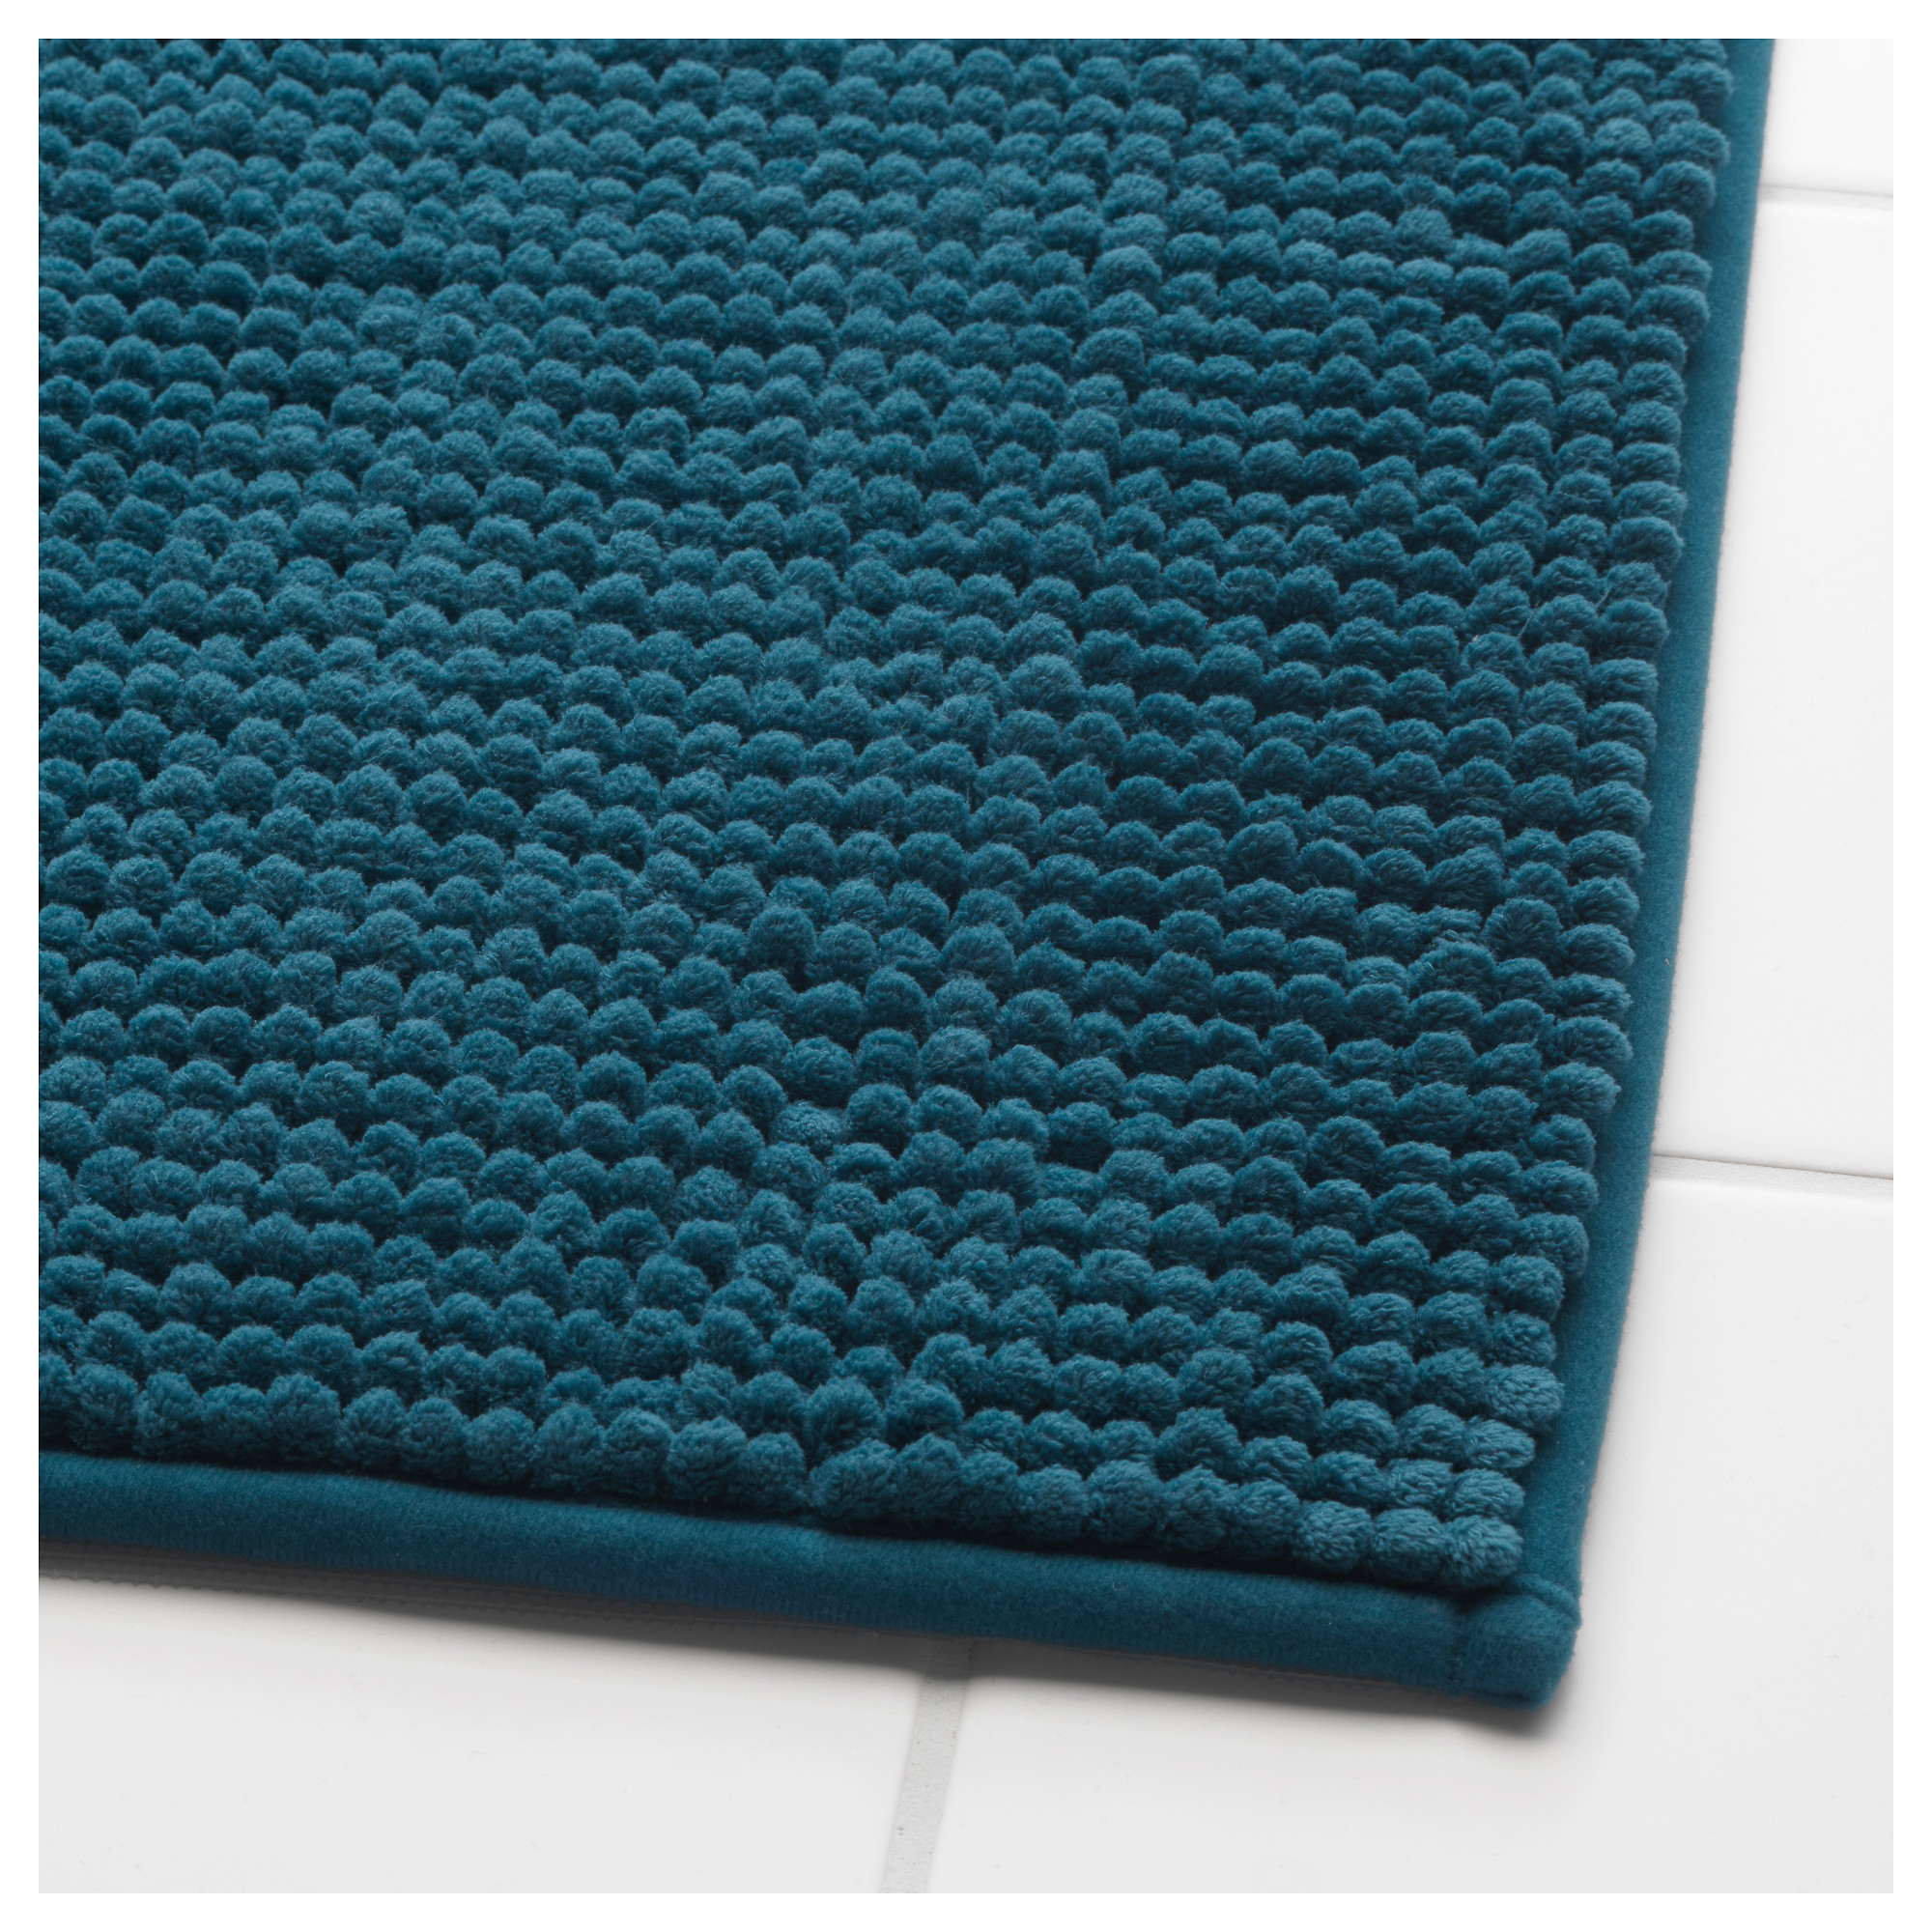 Furniture Home Furnishings Find Your Inspiration In 2020 Bathroom Mats Teal Bathroom Accessories Teal Bathroom